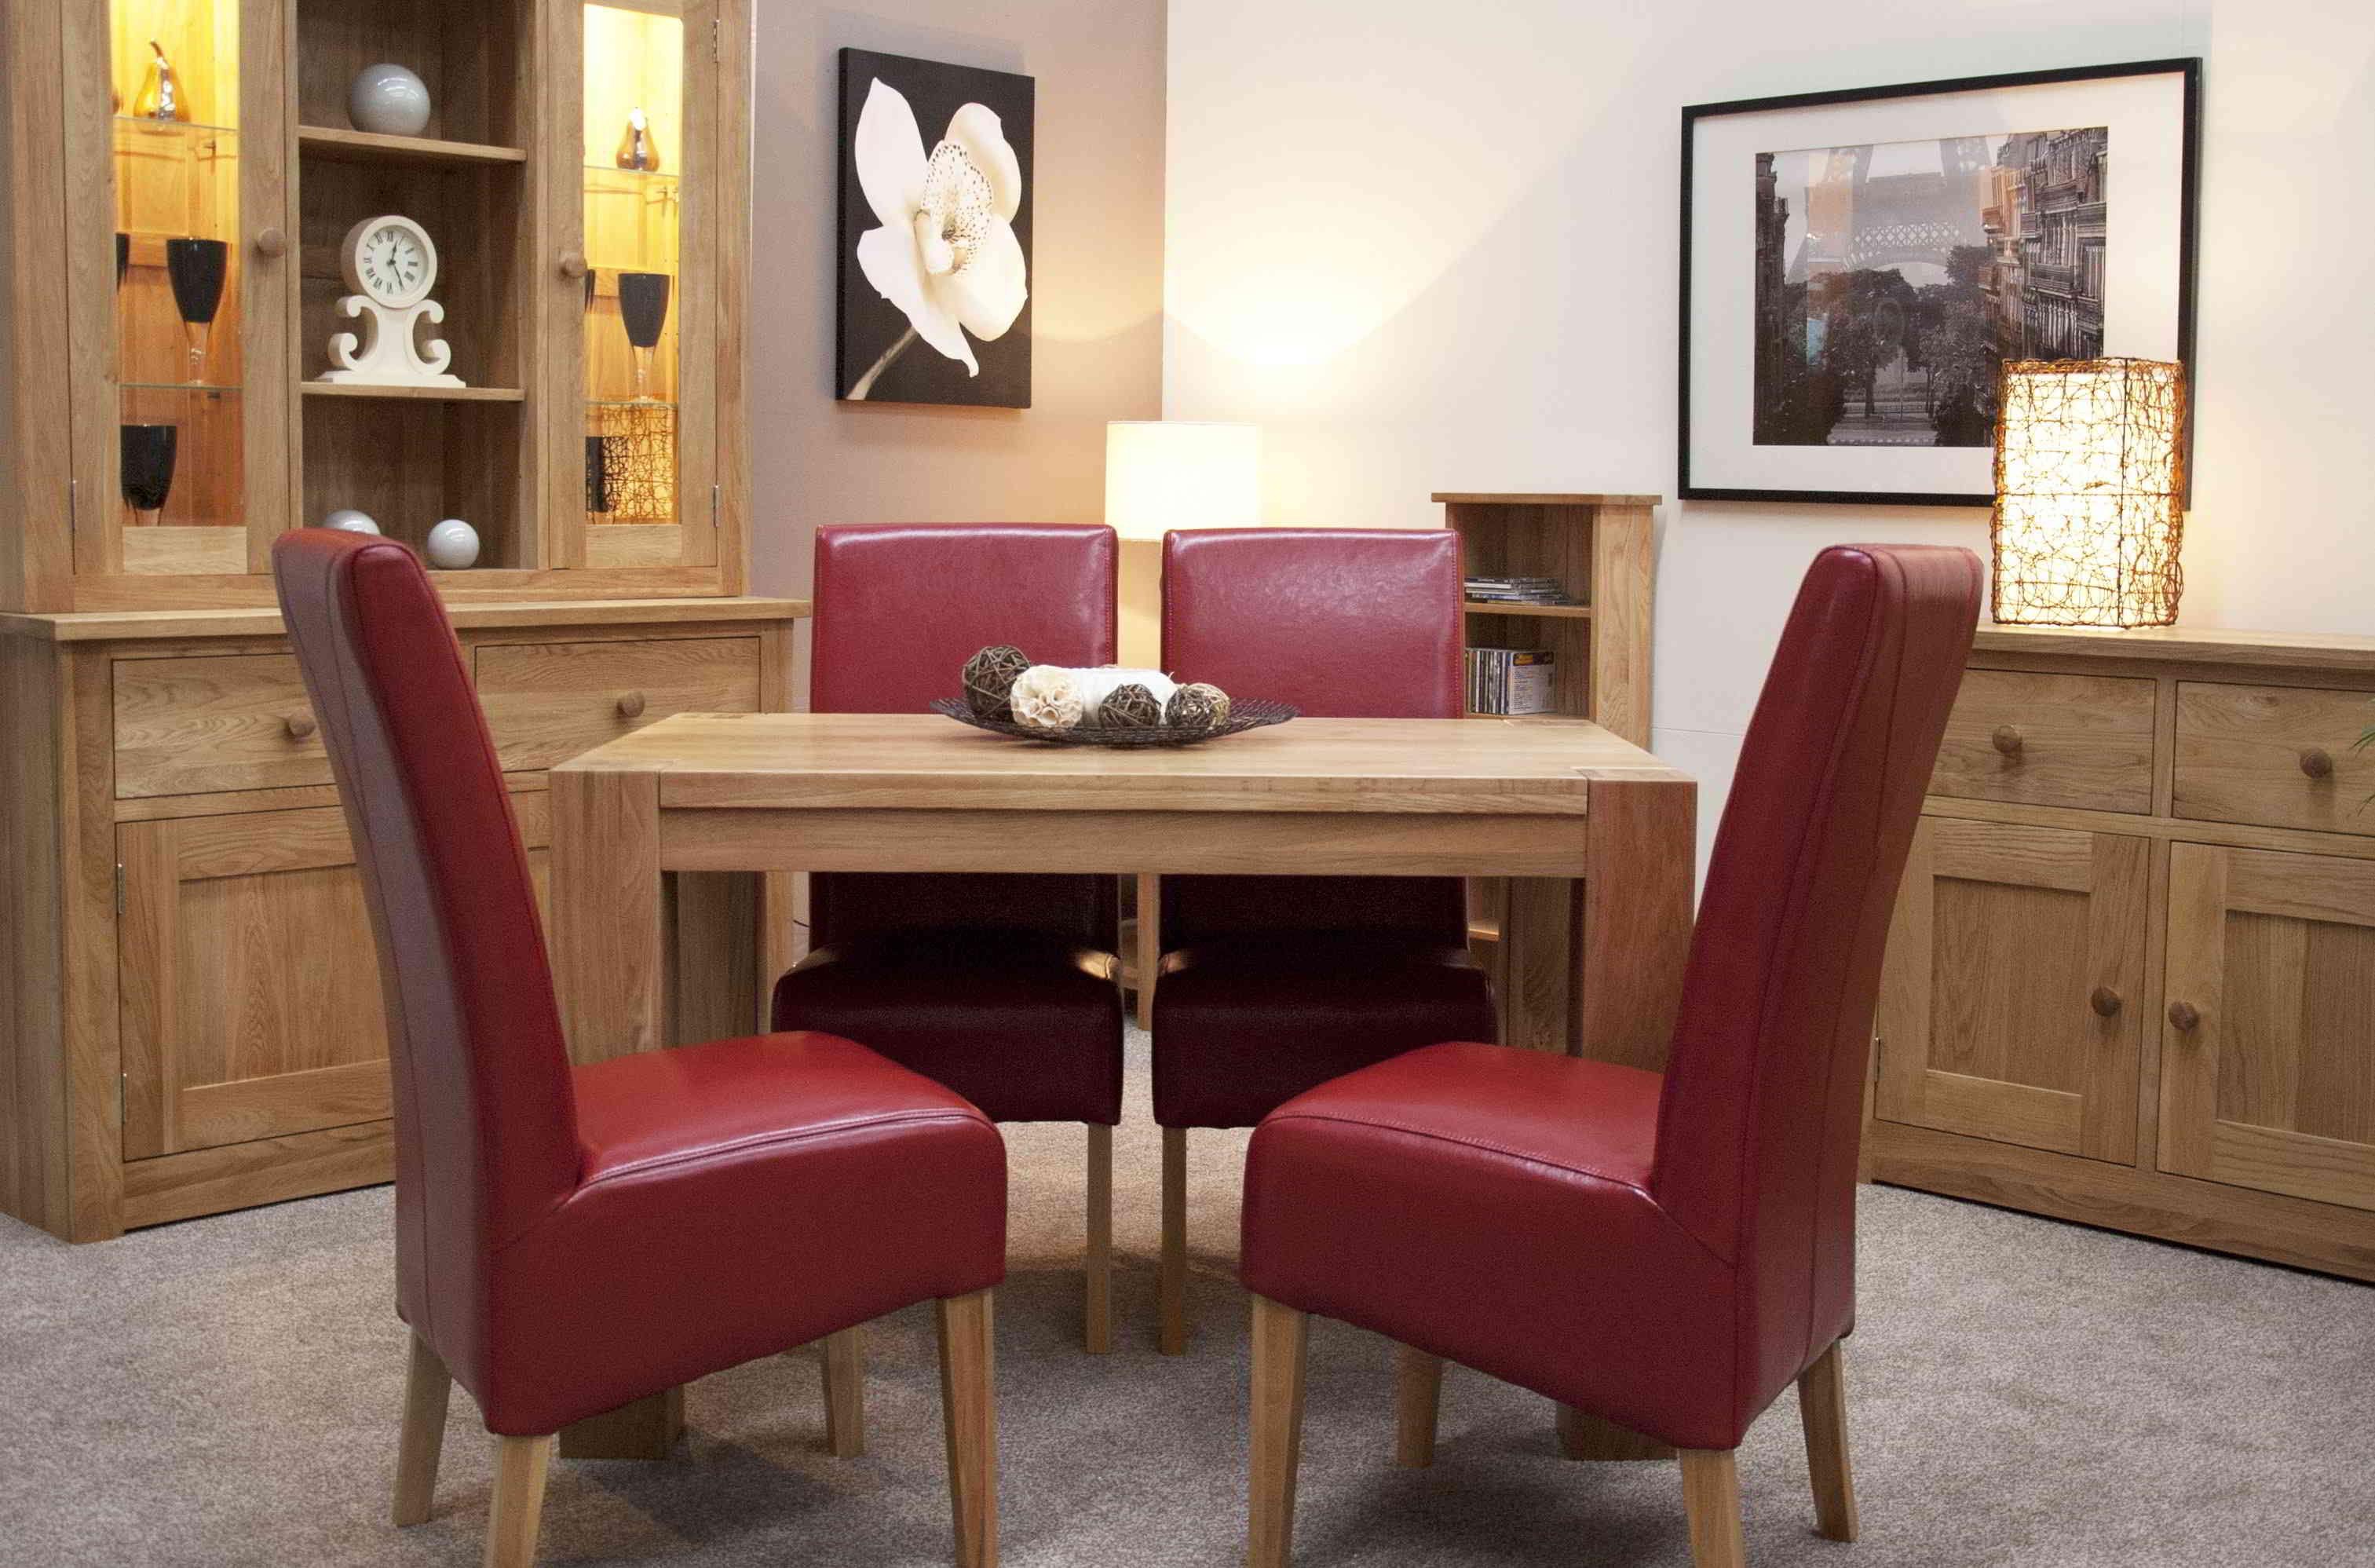 sofas direct from factory uk black suede sectional sofa romano solid oak furniture small dining table and four red